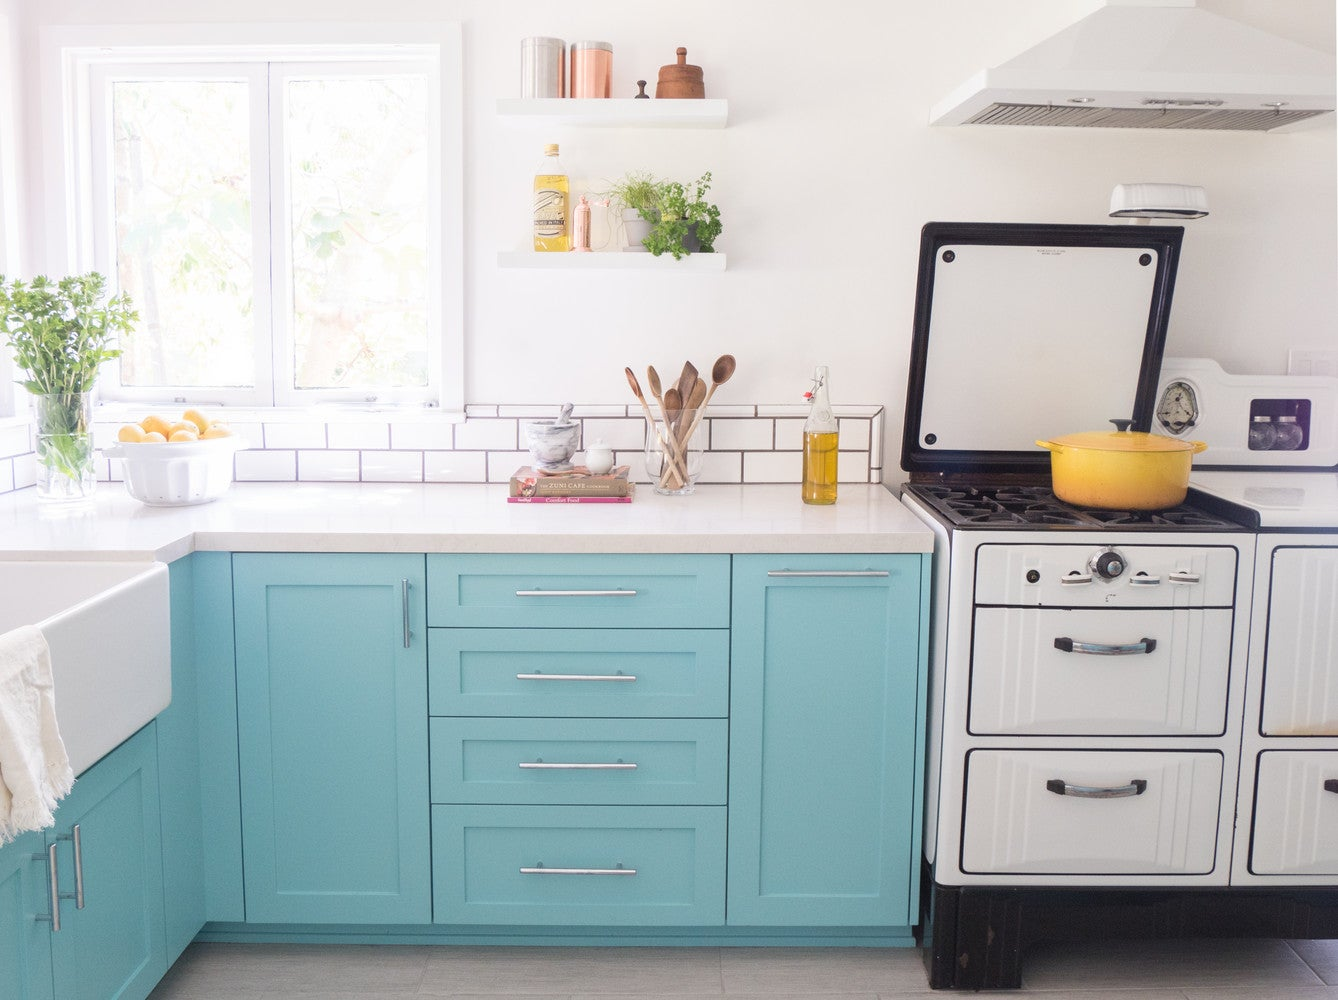 Before and After: A 1920s Kitchen Makeover | Domino